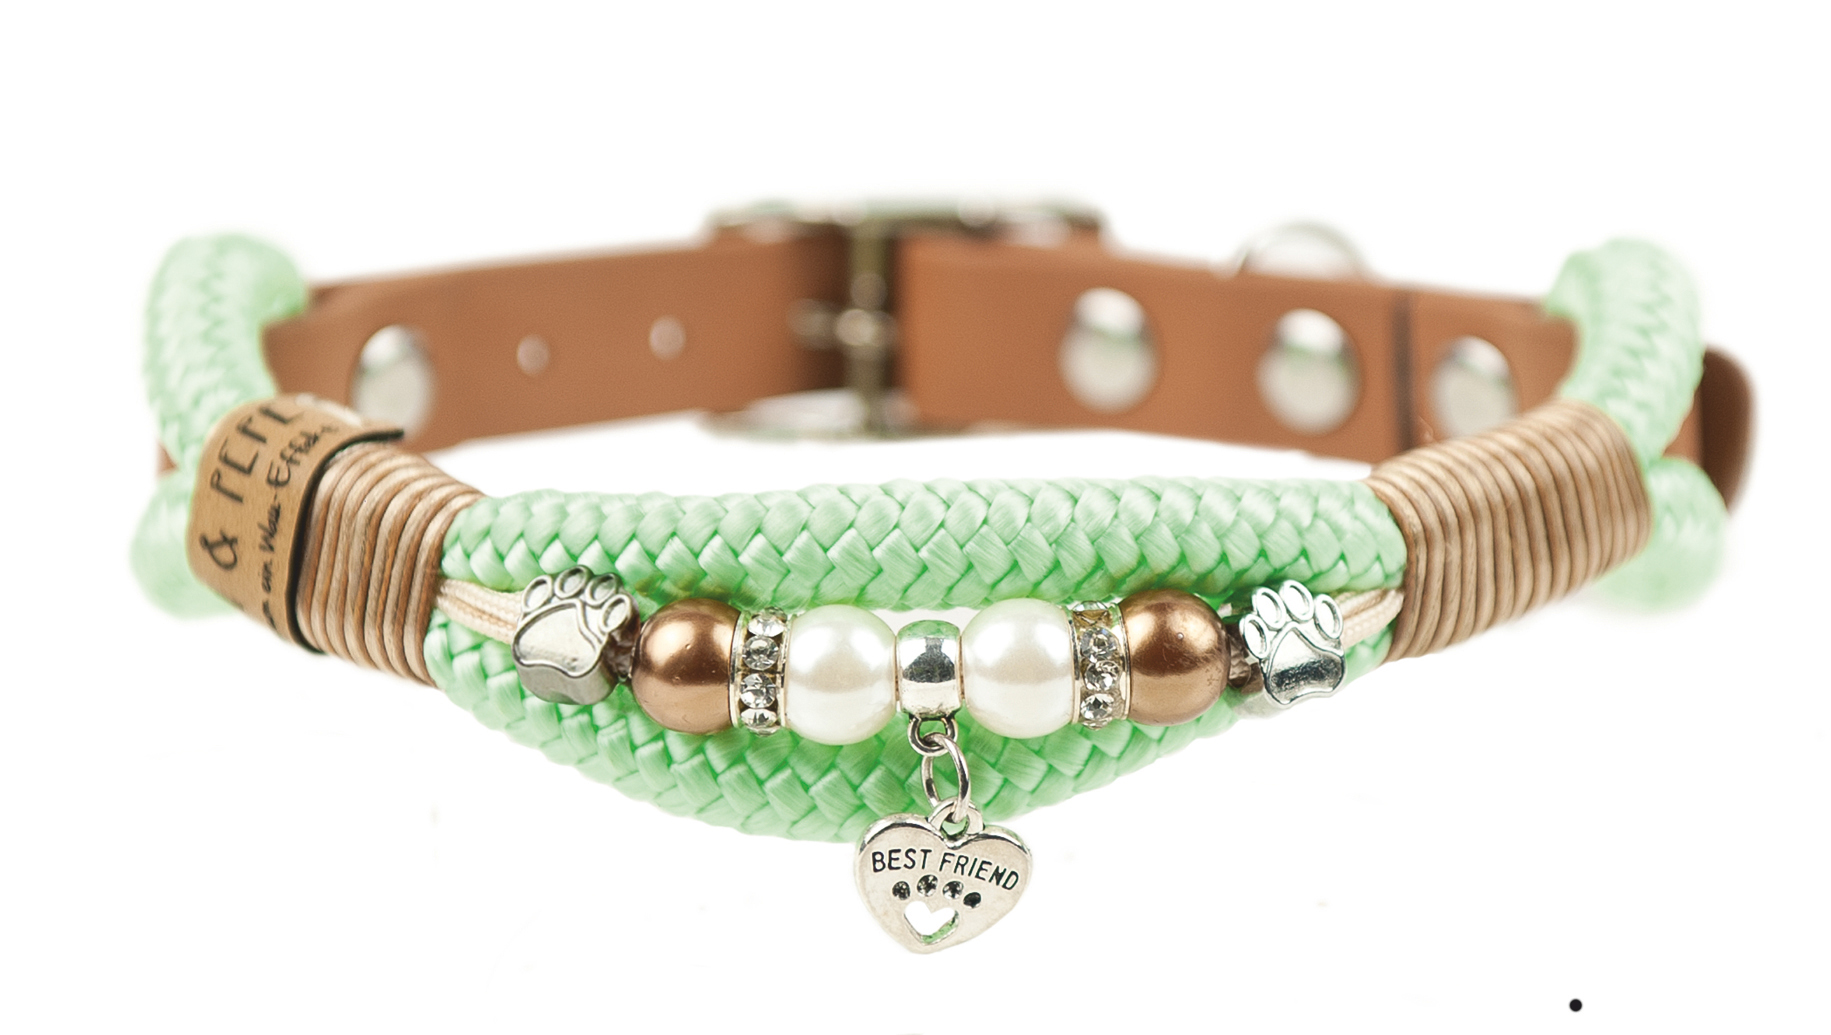 Emmy & Pepe Halsband mit Perlen Best Friend